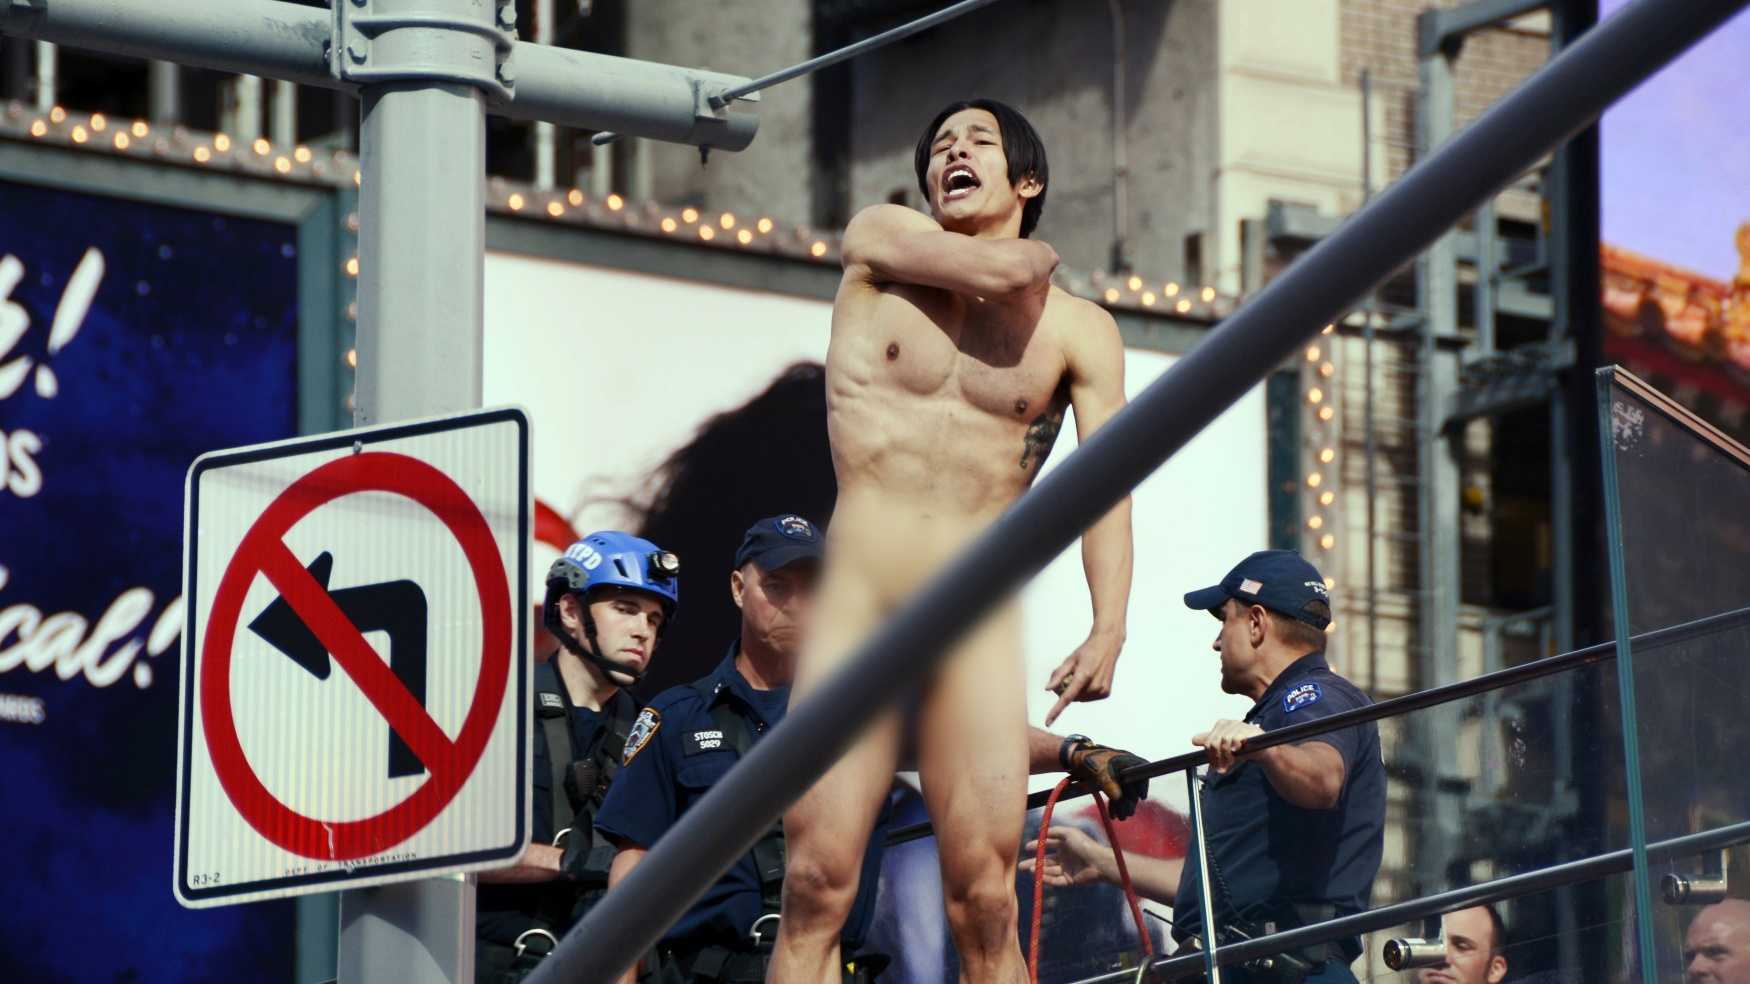 A naked man shouts before jumping from the ledge above the TKTS Broadway ticket booth in New York's Times Square, Thursday, June 30, 2016. Police said the man, who was shouting about presumptive Republican presidential nominee Donald Trump, was conscious after the jump of about 16 feet off the booth.